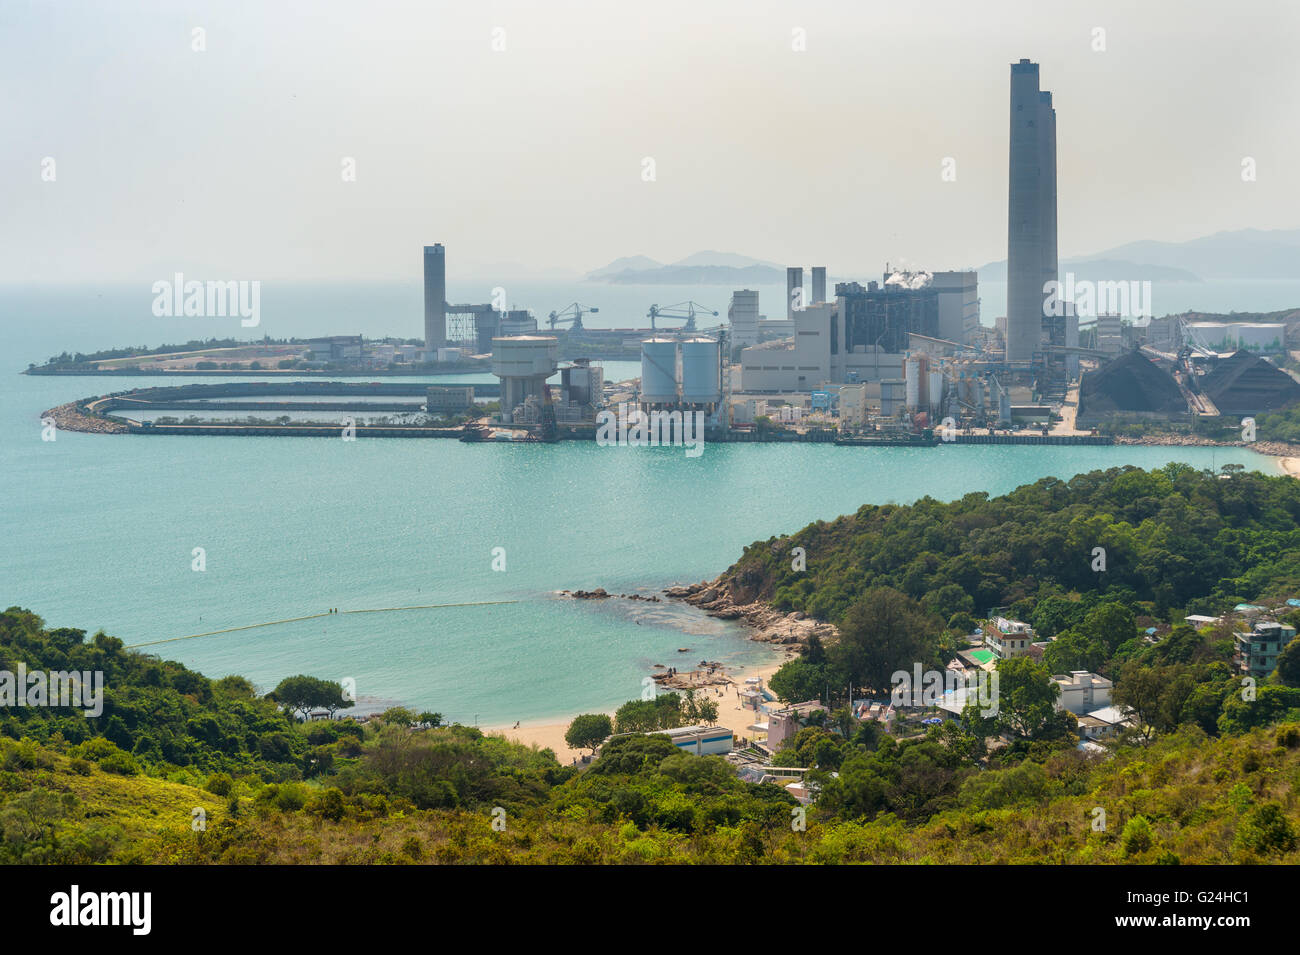 Lamma Power Station on Lamma Island, near Honk Kong, China - Stock Image